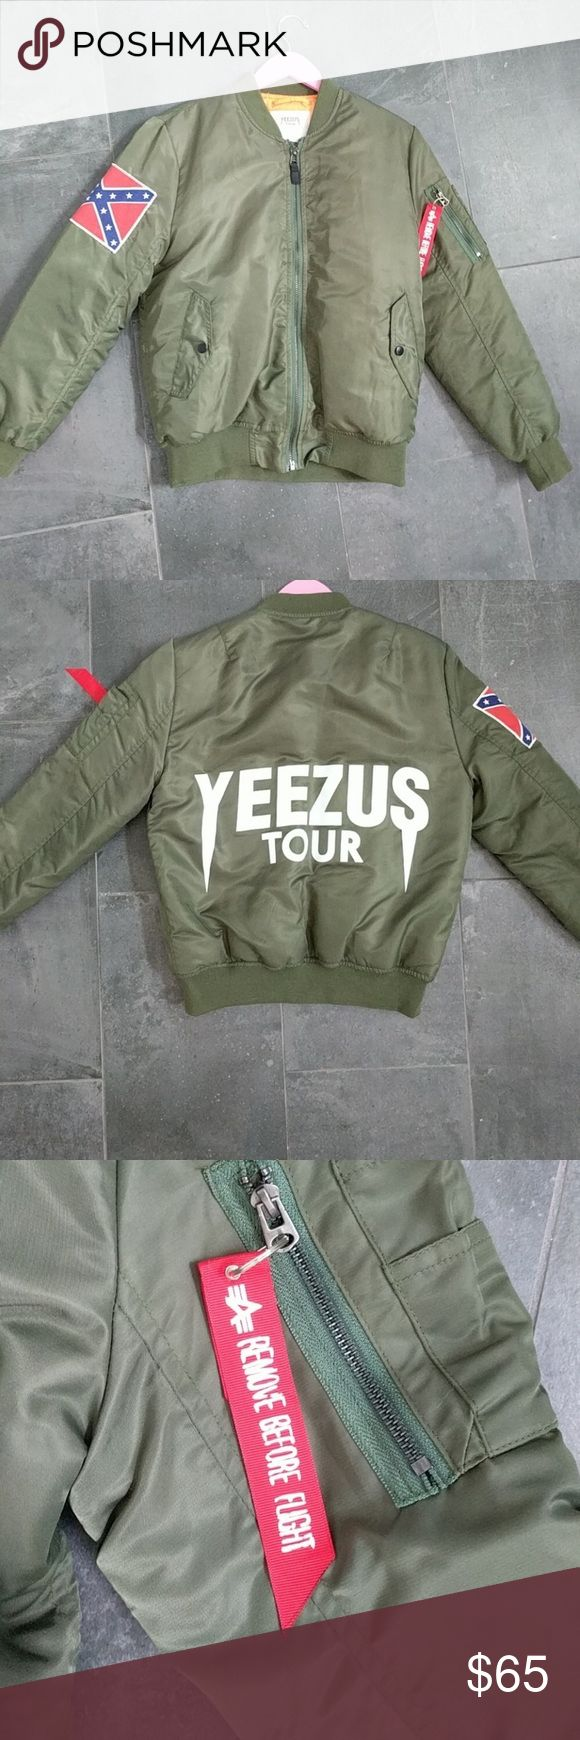 Kanye West Yeezus Tour Bomber Jacket 100% authentic. Purchased from concert. Worn one and in PERFECT condition. Re-poshing because it's a bit too big for me :( Yeezy Jackets & Coats